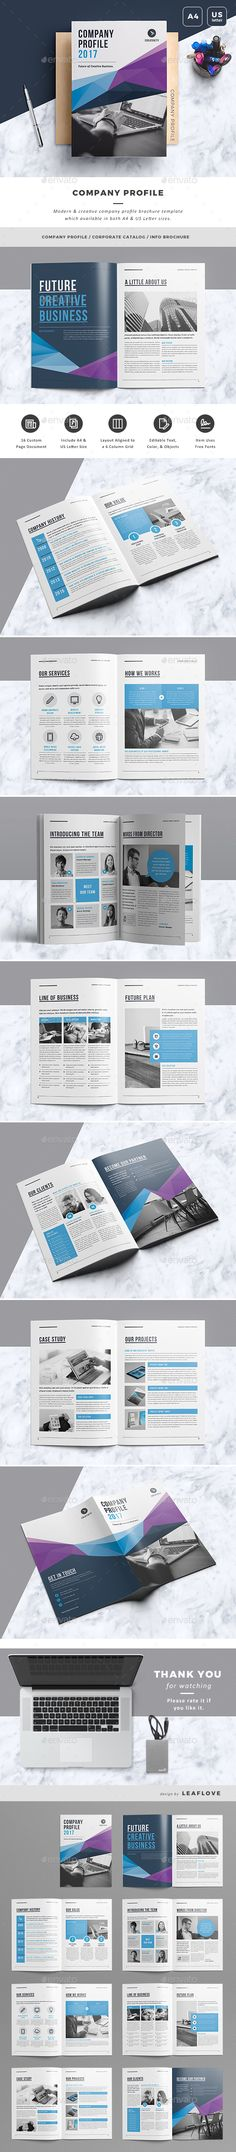 Company Profile — InDesign INDD #business #solution • Download ➝ https://graphicriver.net/item/company-profile/19367933?ref=pxcr